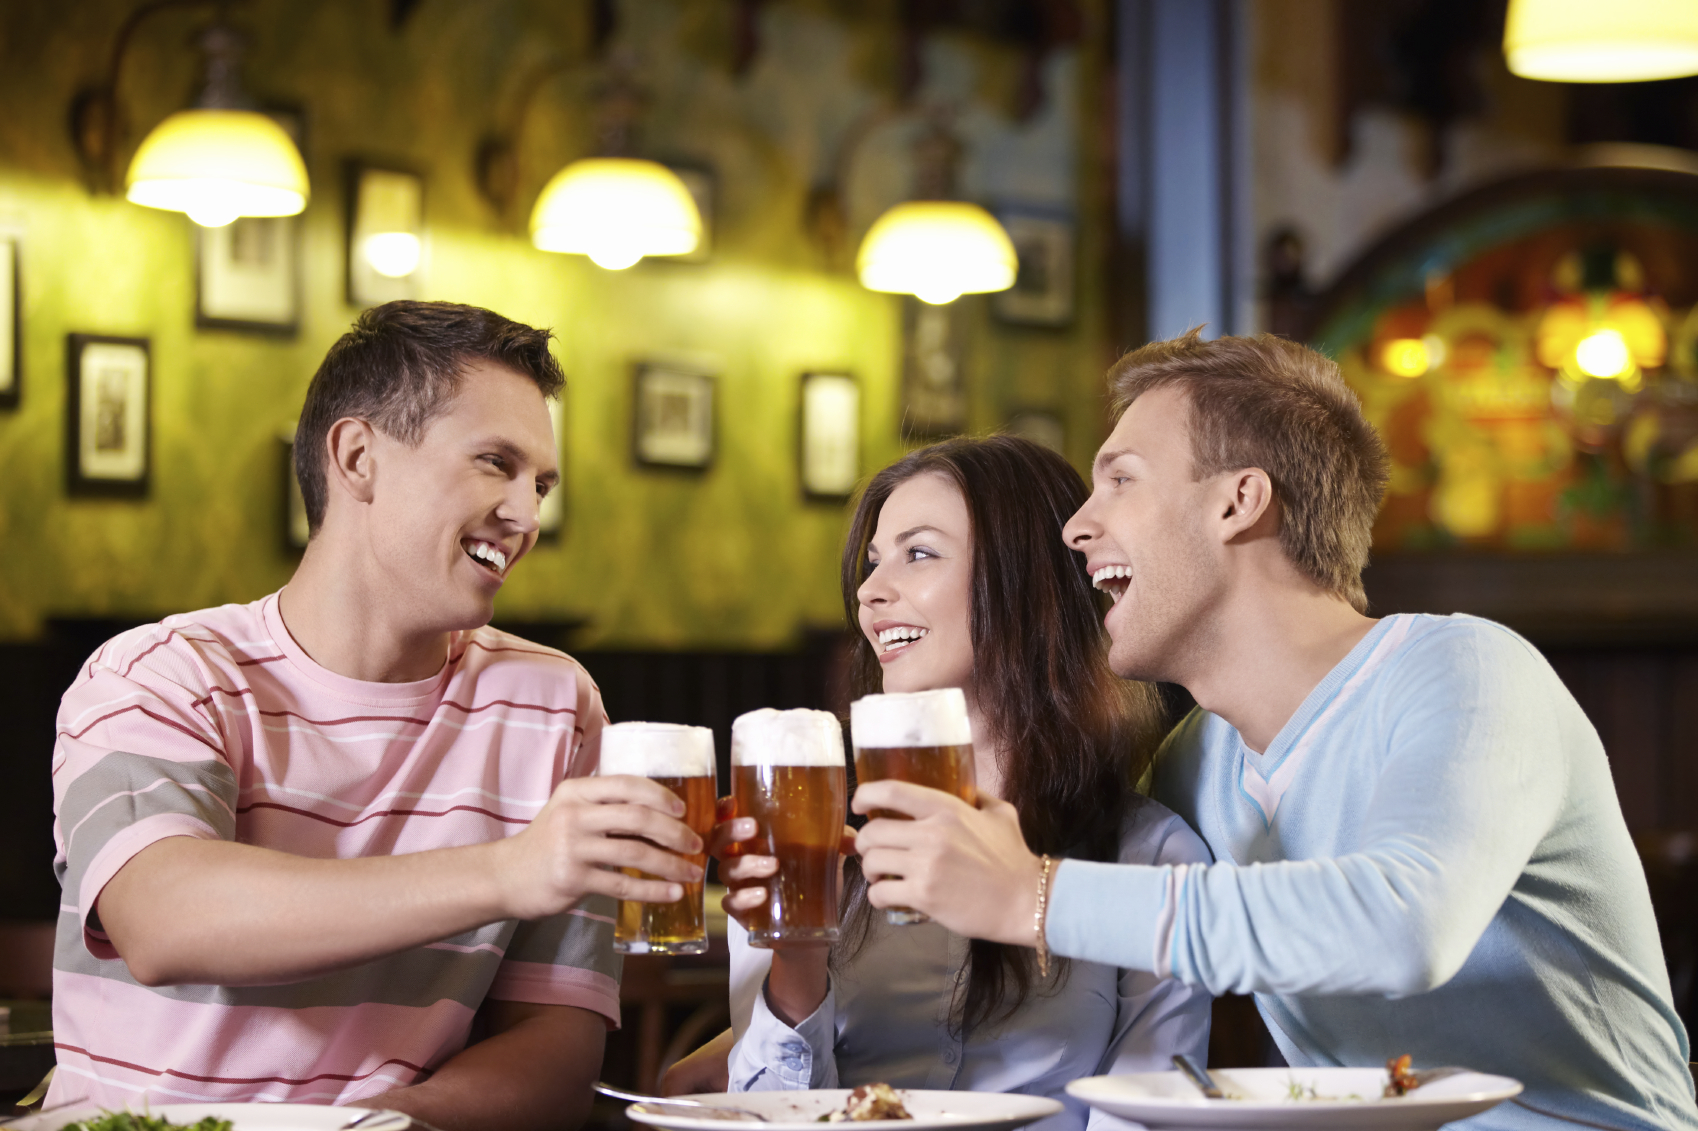 Young people with a beer in a restaurant